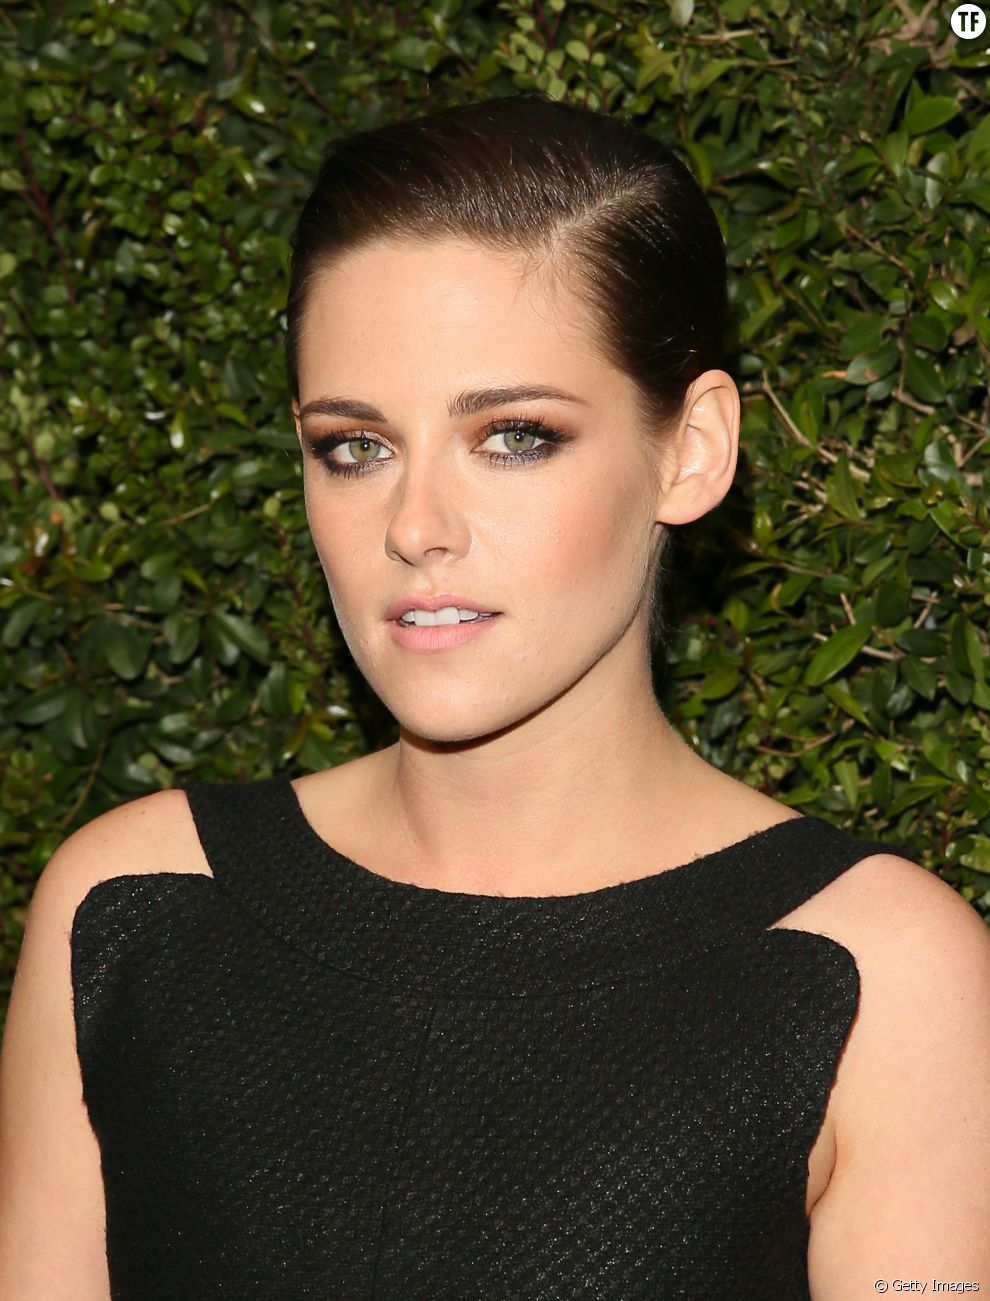 Kristen Stewart explains why she decided to get a buzz cut